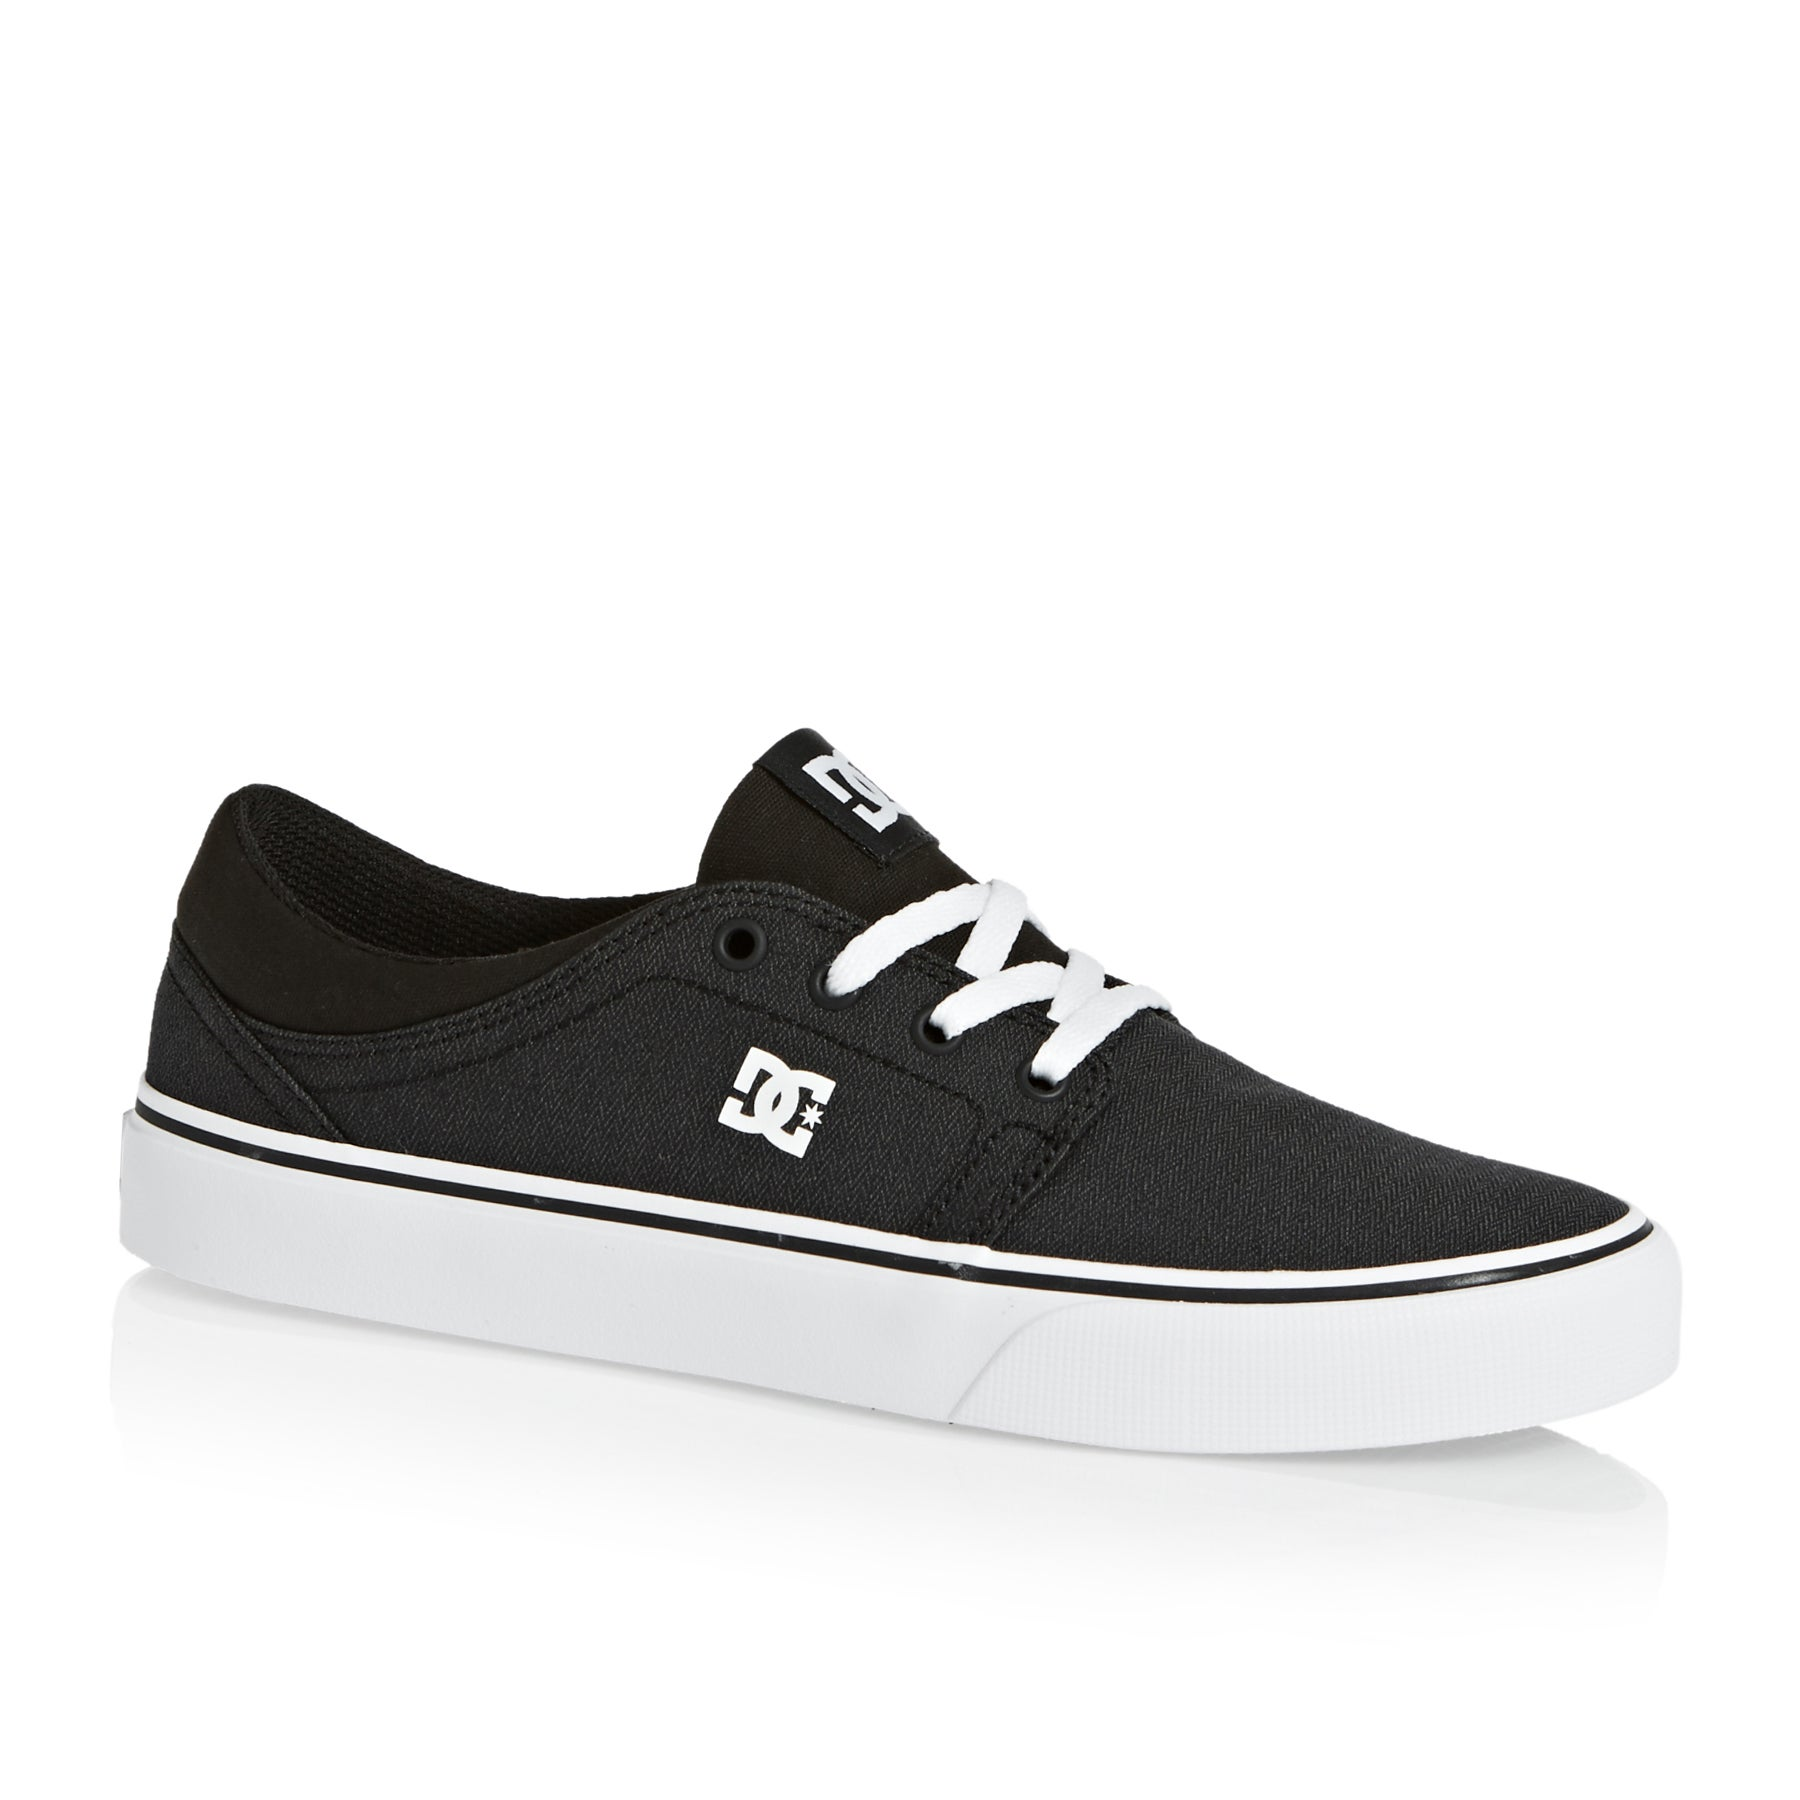 DC Trase TX SE Shoes - Black/gun Metal